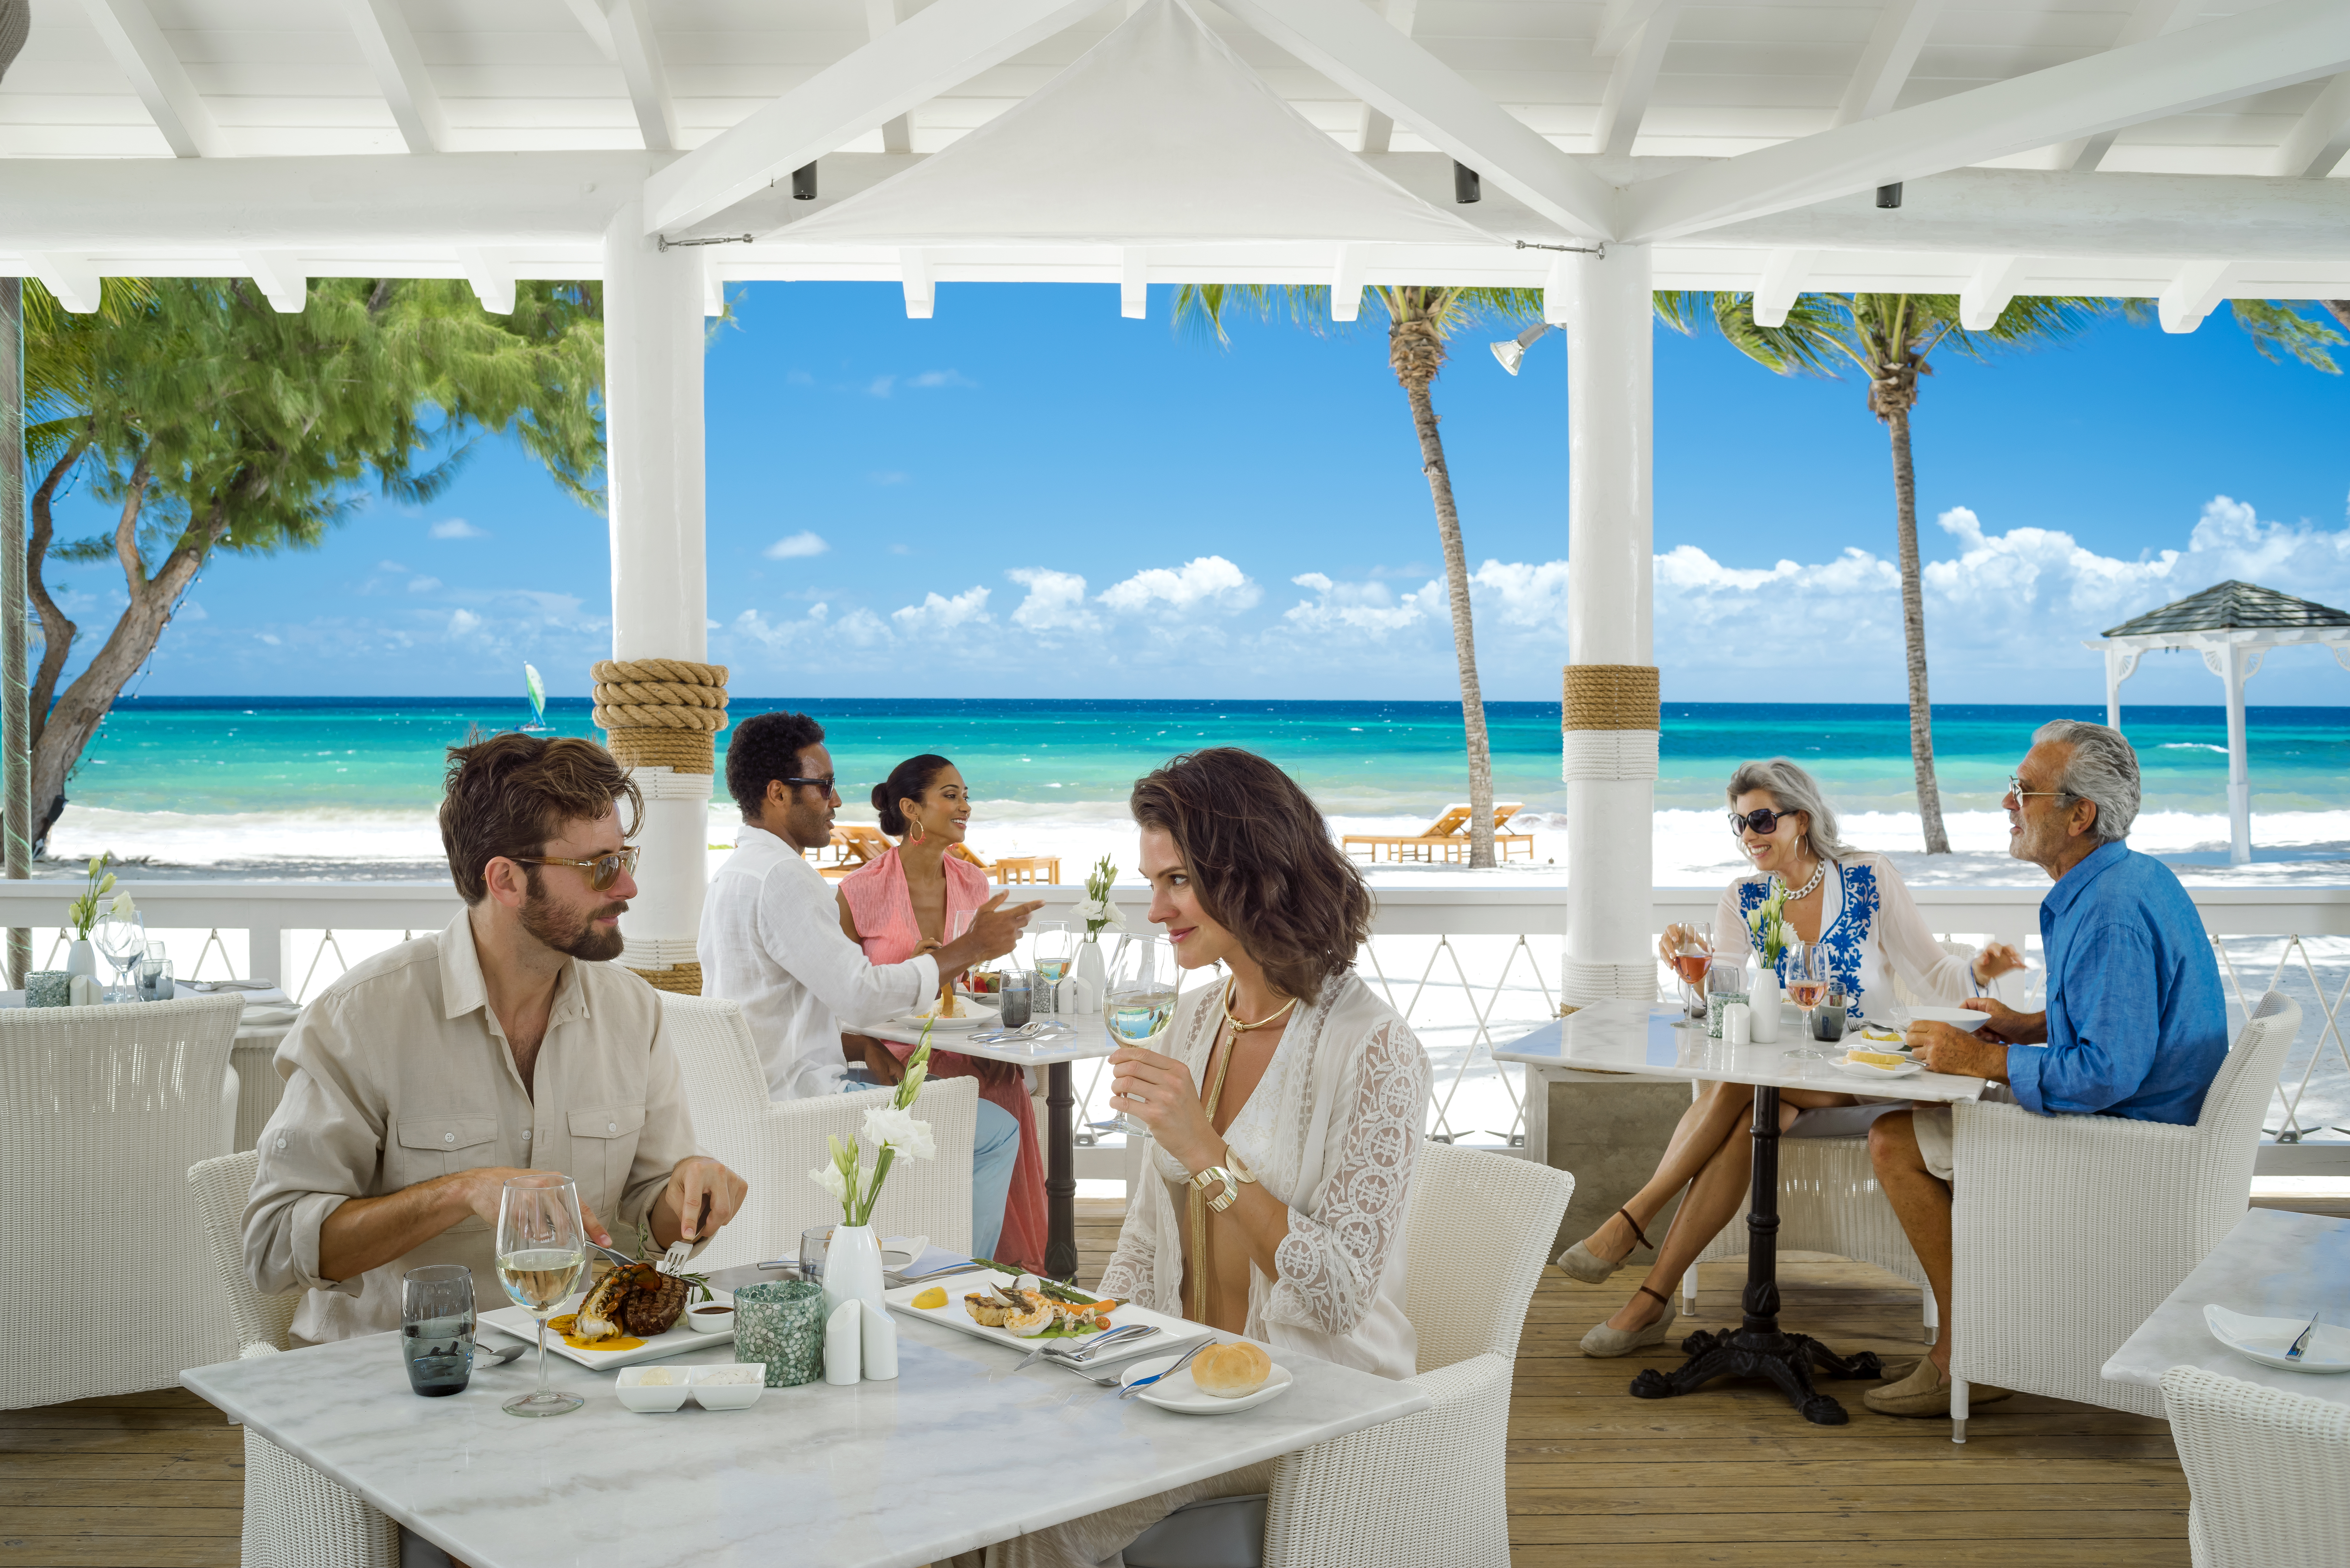 All Inclusive dining at Schooners